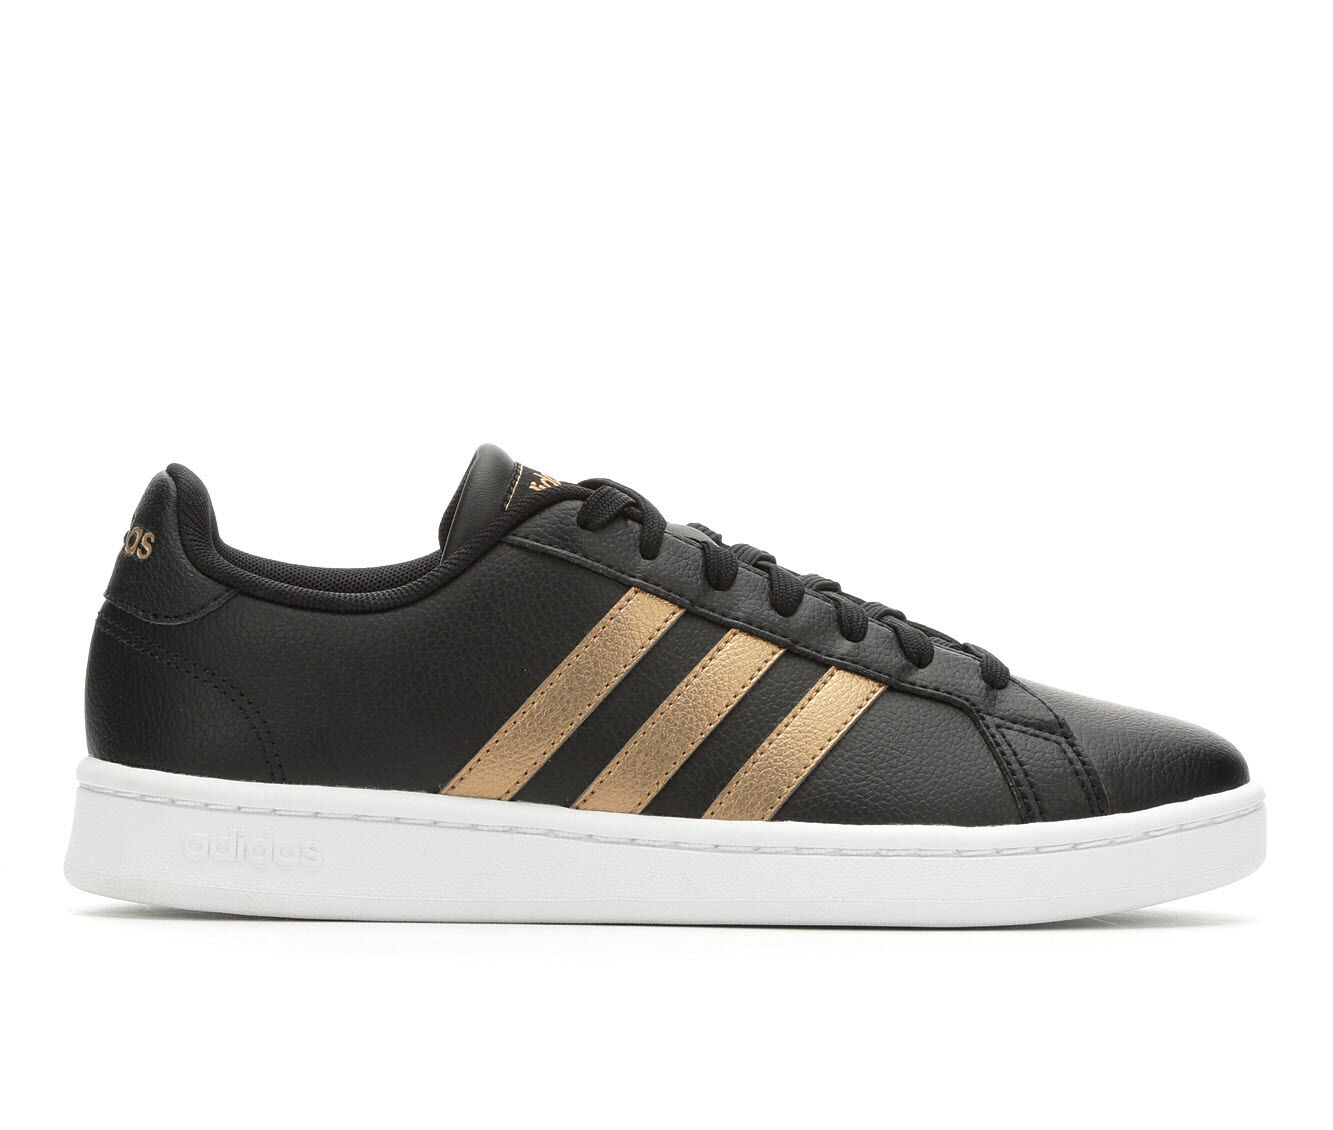 Women's Adidas Grand Court Basketball Shoes Black/Copper/Wh